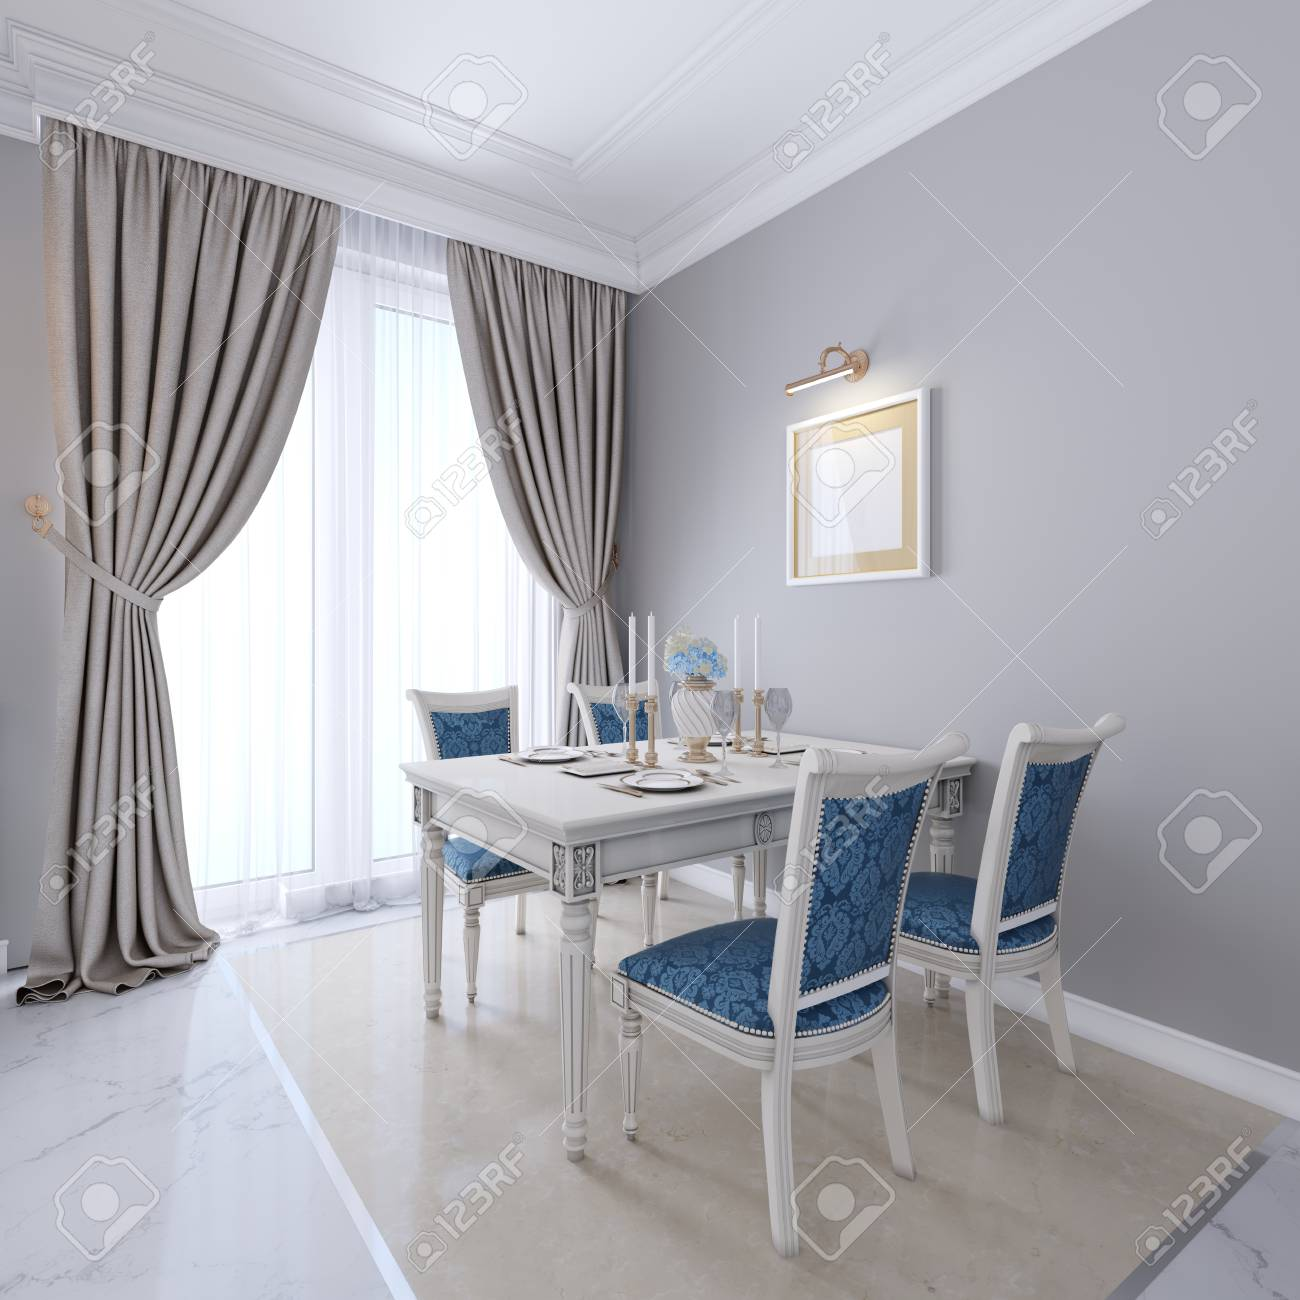 Luxurious Dining Table With White Furniture And Blue Upholstery Stock Photo Picture And Royalty Free Image Image 113380694